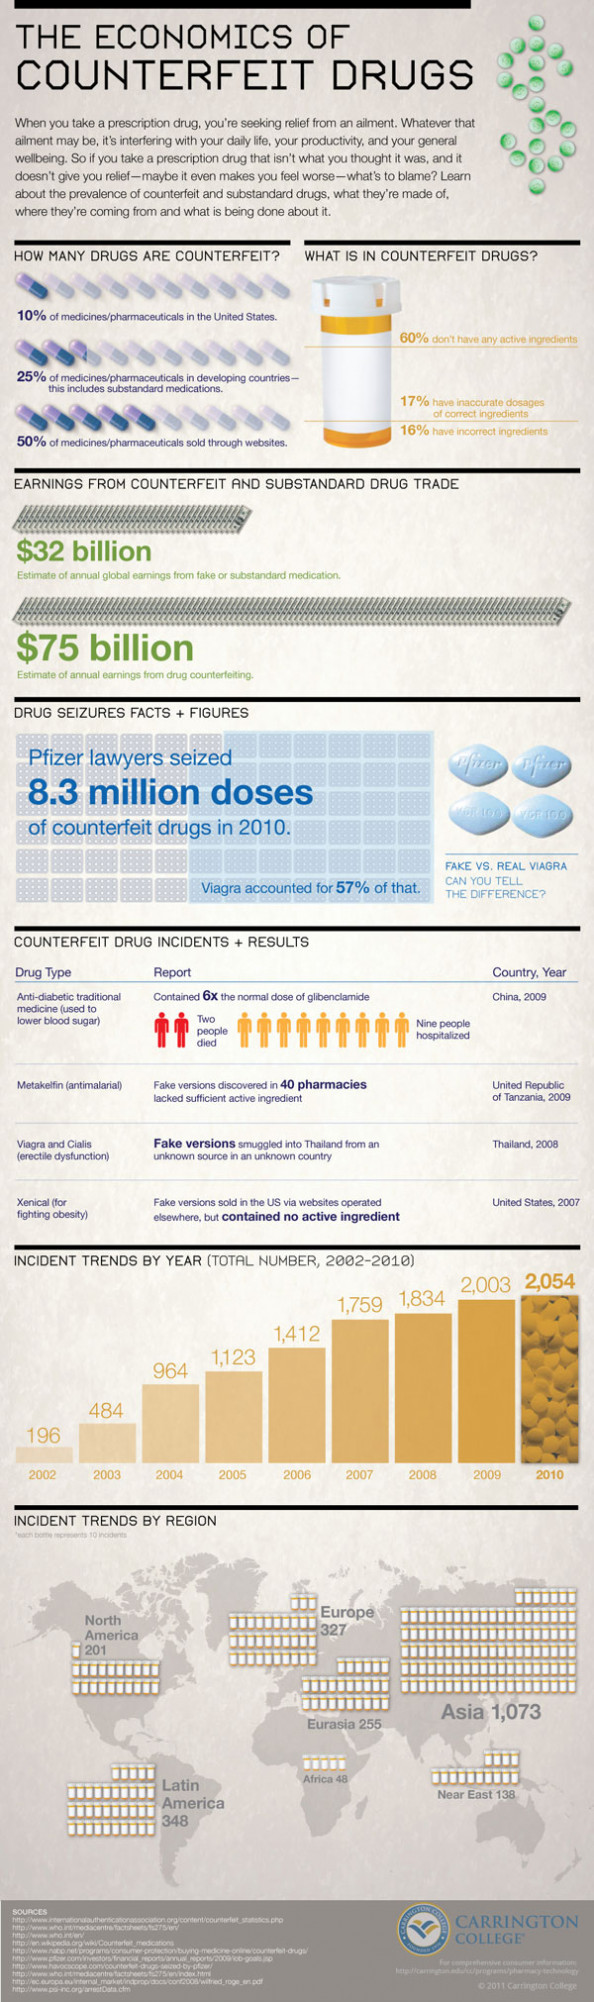 The Economics of Counterfeit Drugs Infographic